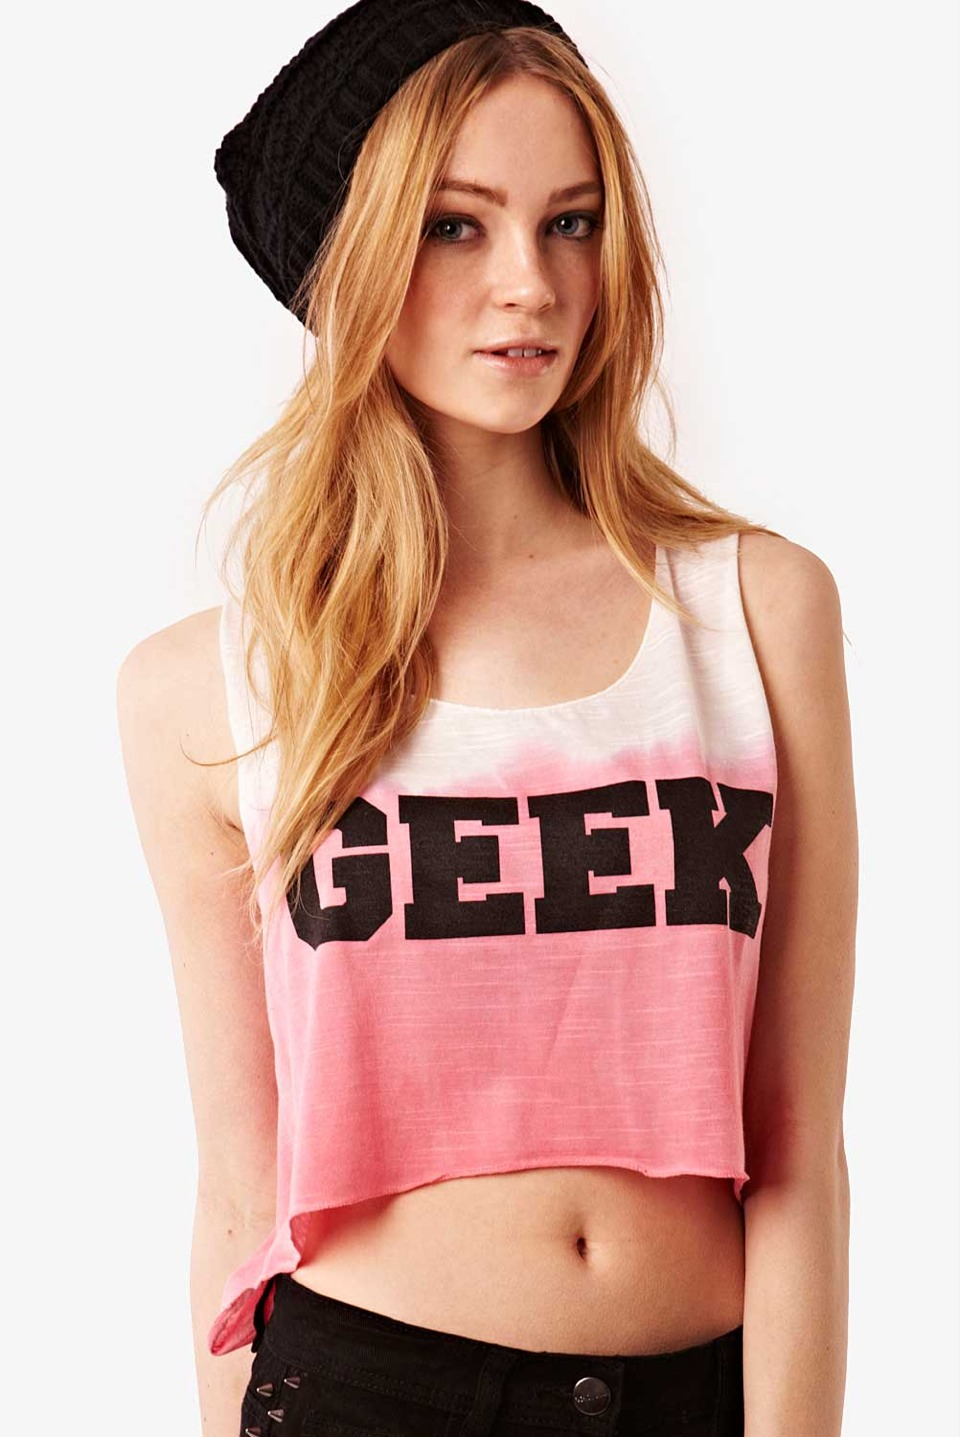 Crop tops are a must have in the summer because it shows ur body you have worked on abd also that beautiful tan u have BTW geek is out